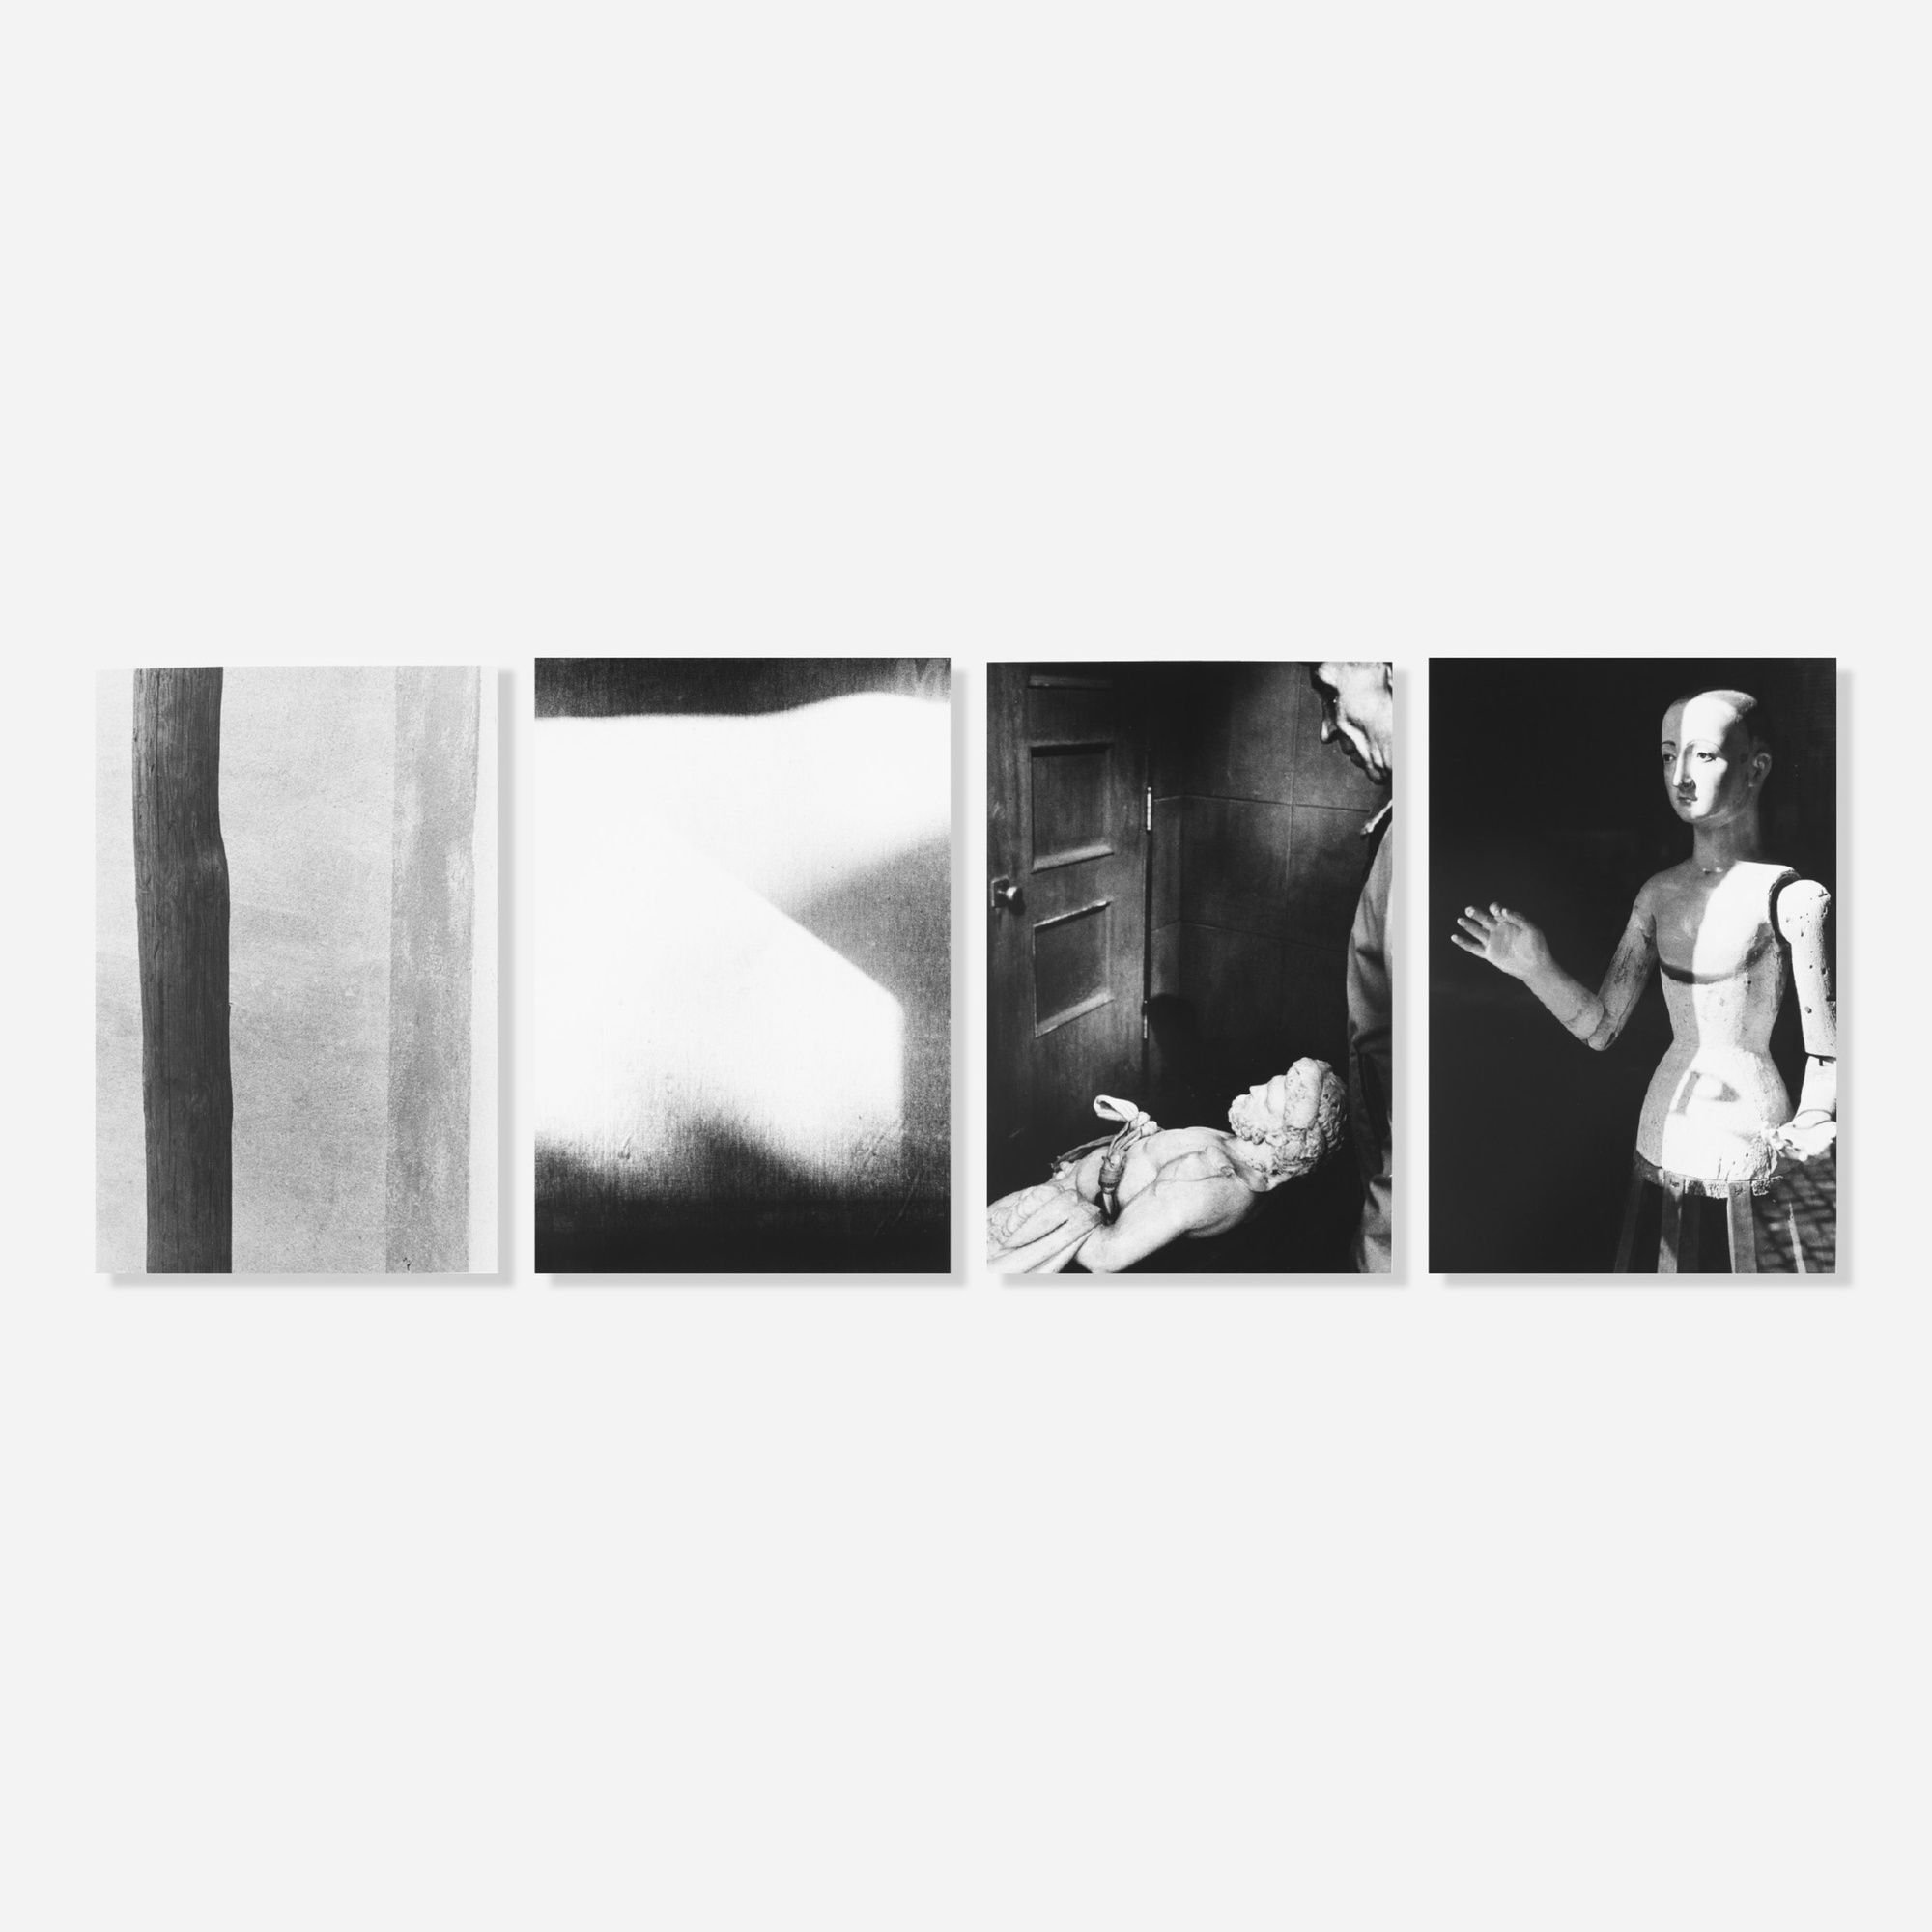 306: Ralph Gibson / Collection of twenty works (2 of 5)